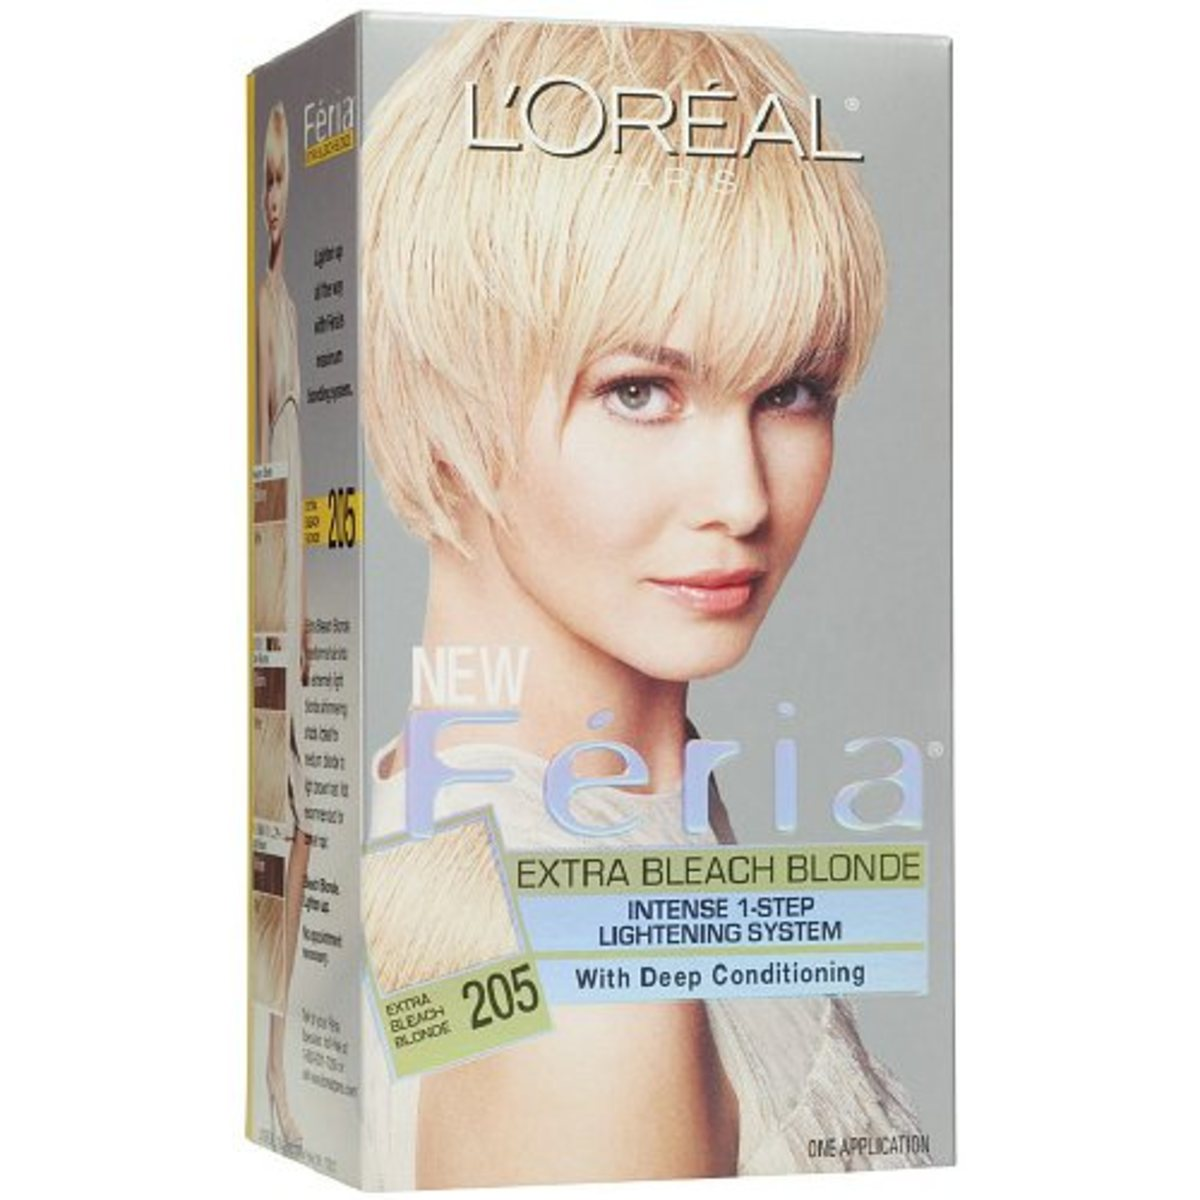 Bleach Only To Achieve Natural Hair Color